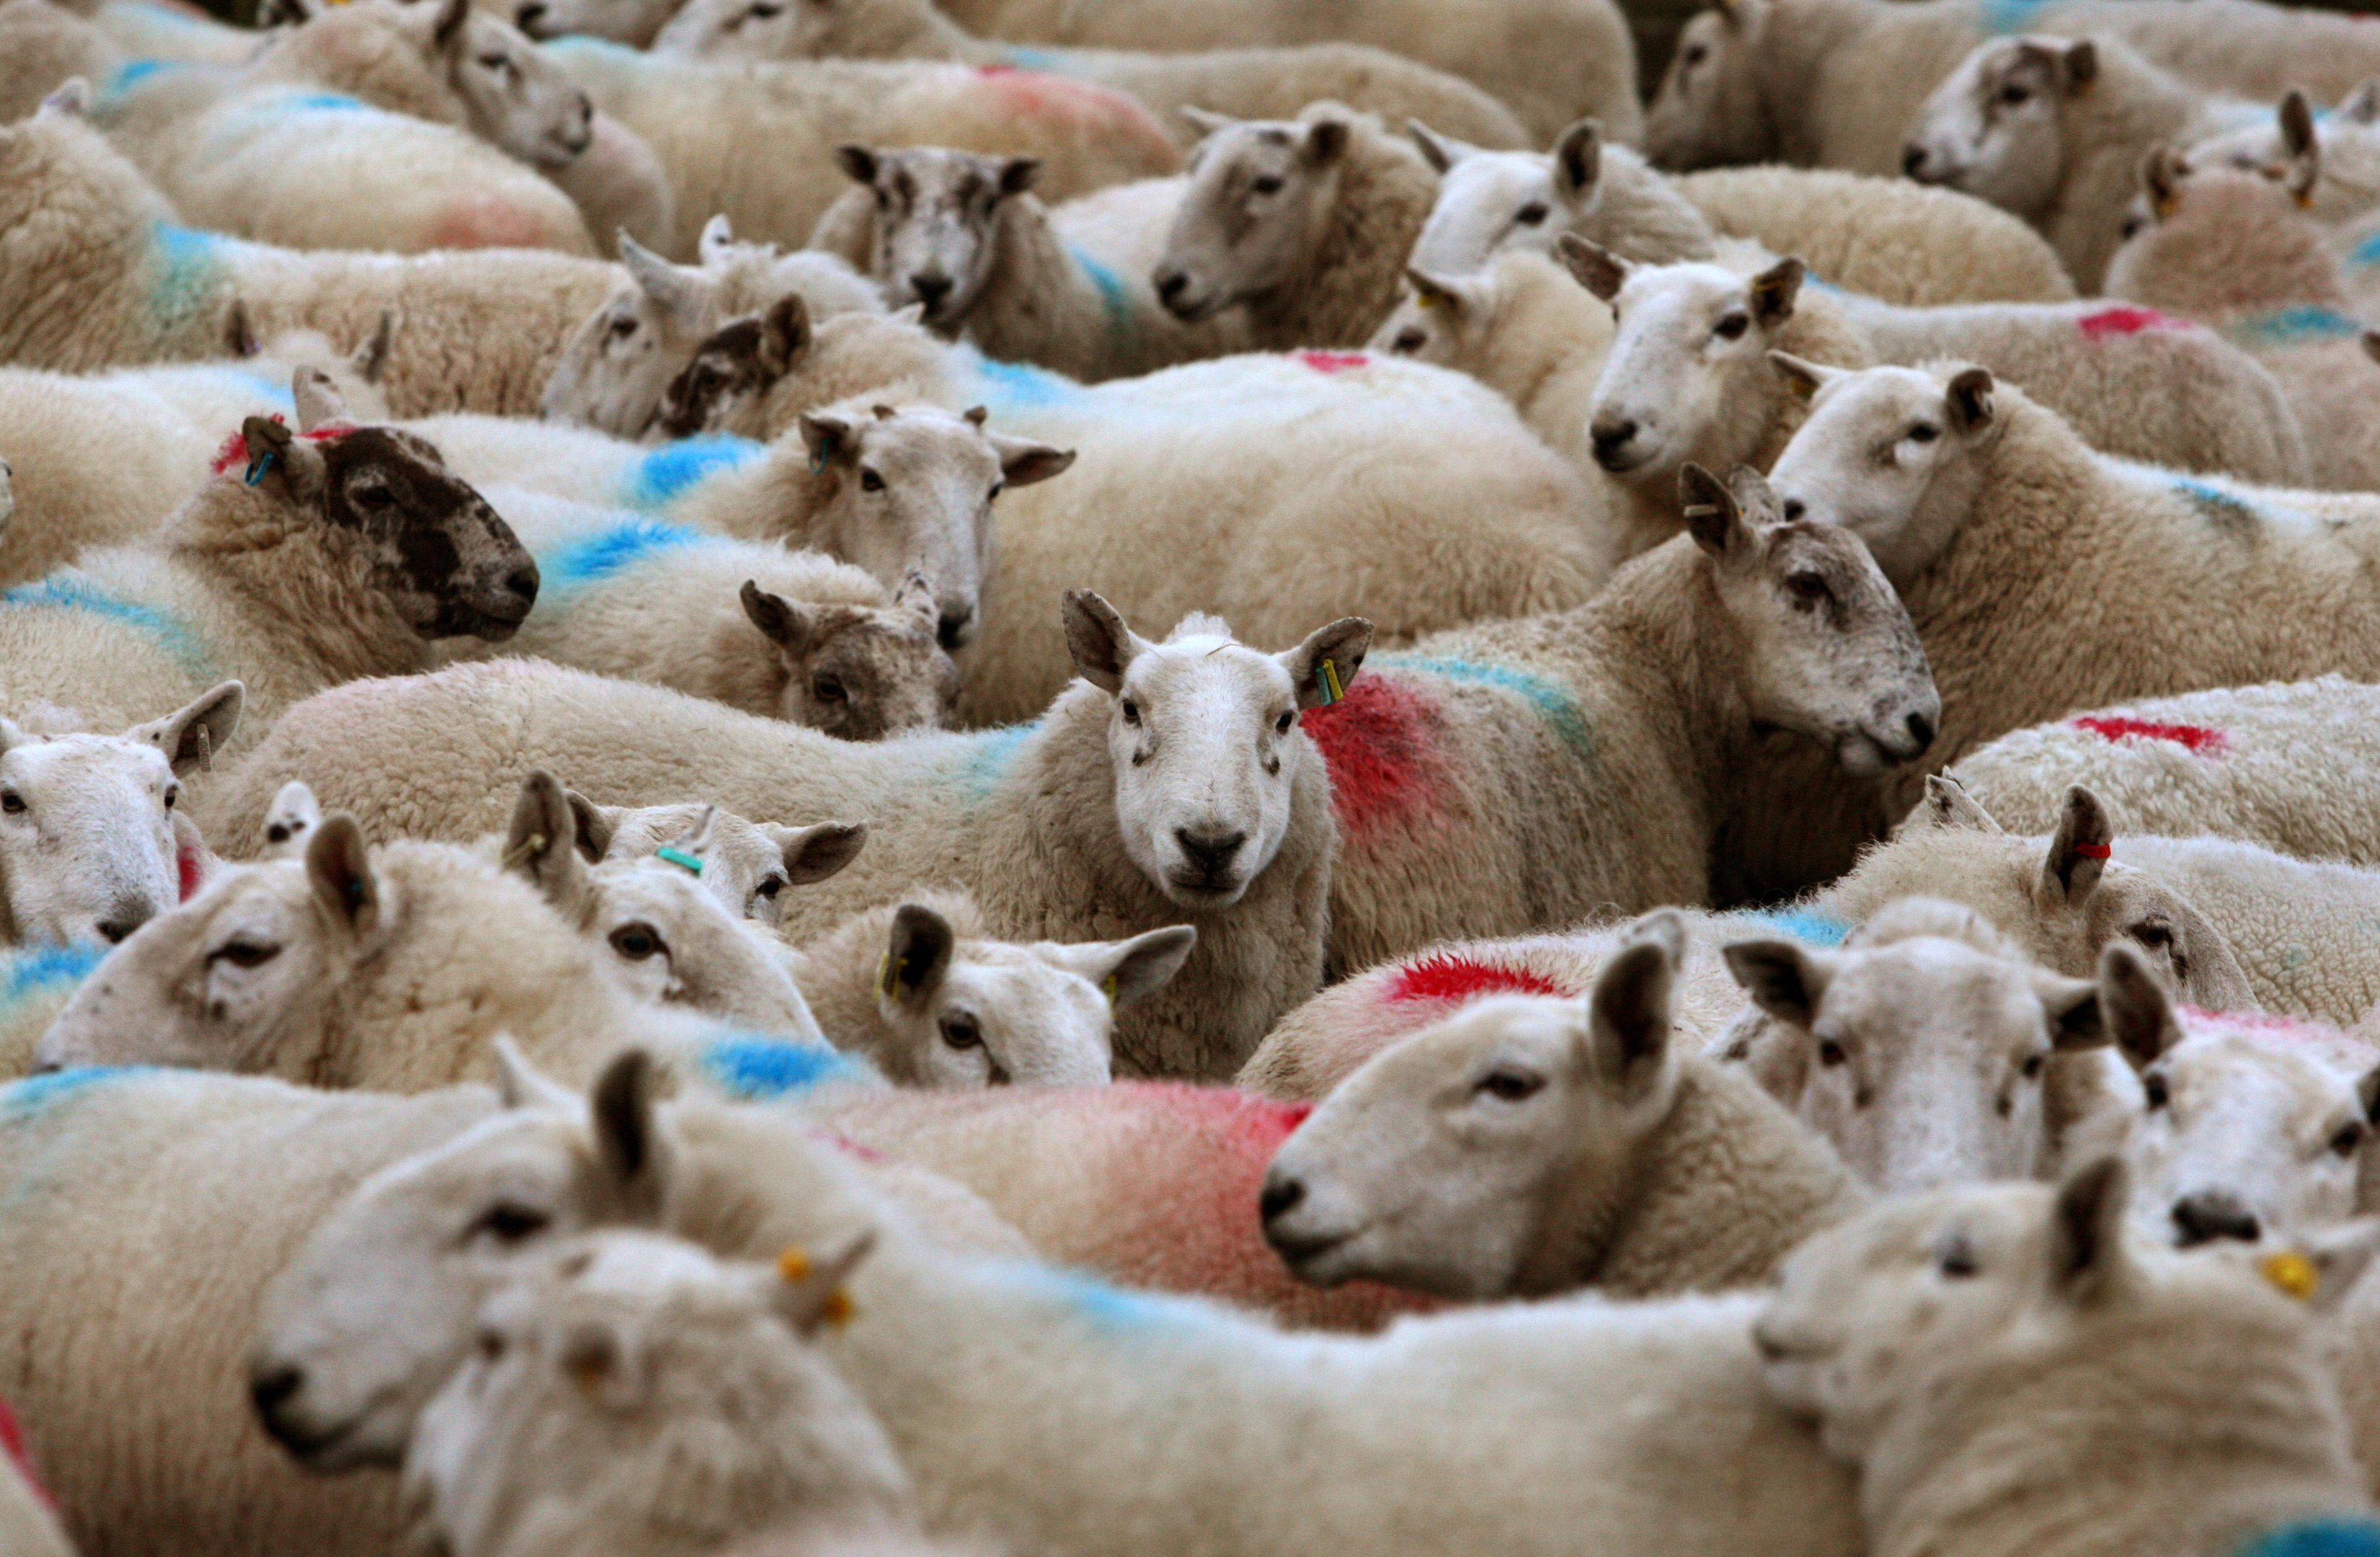 Farmers now need to meet the supermarket's specifications